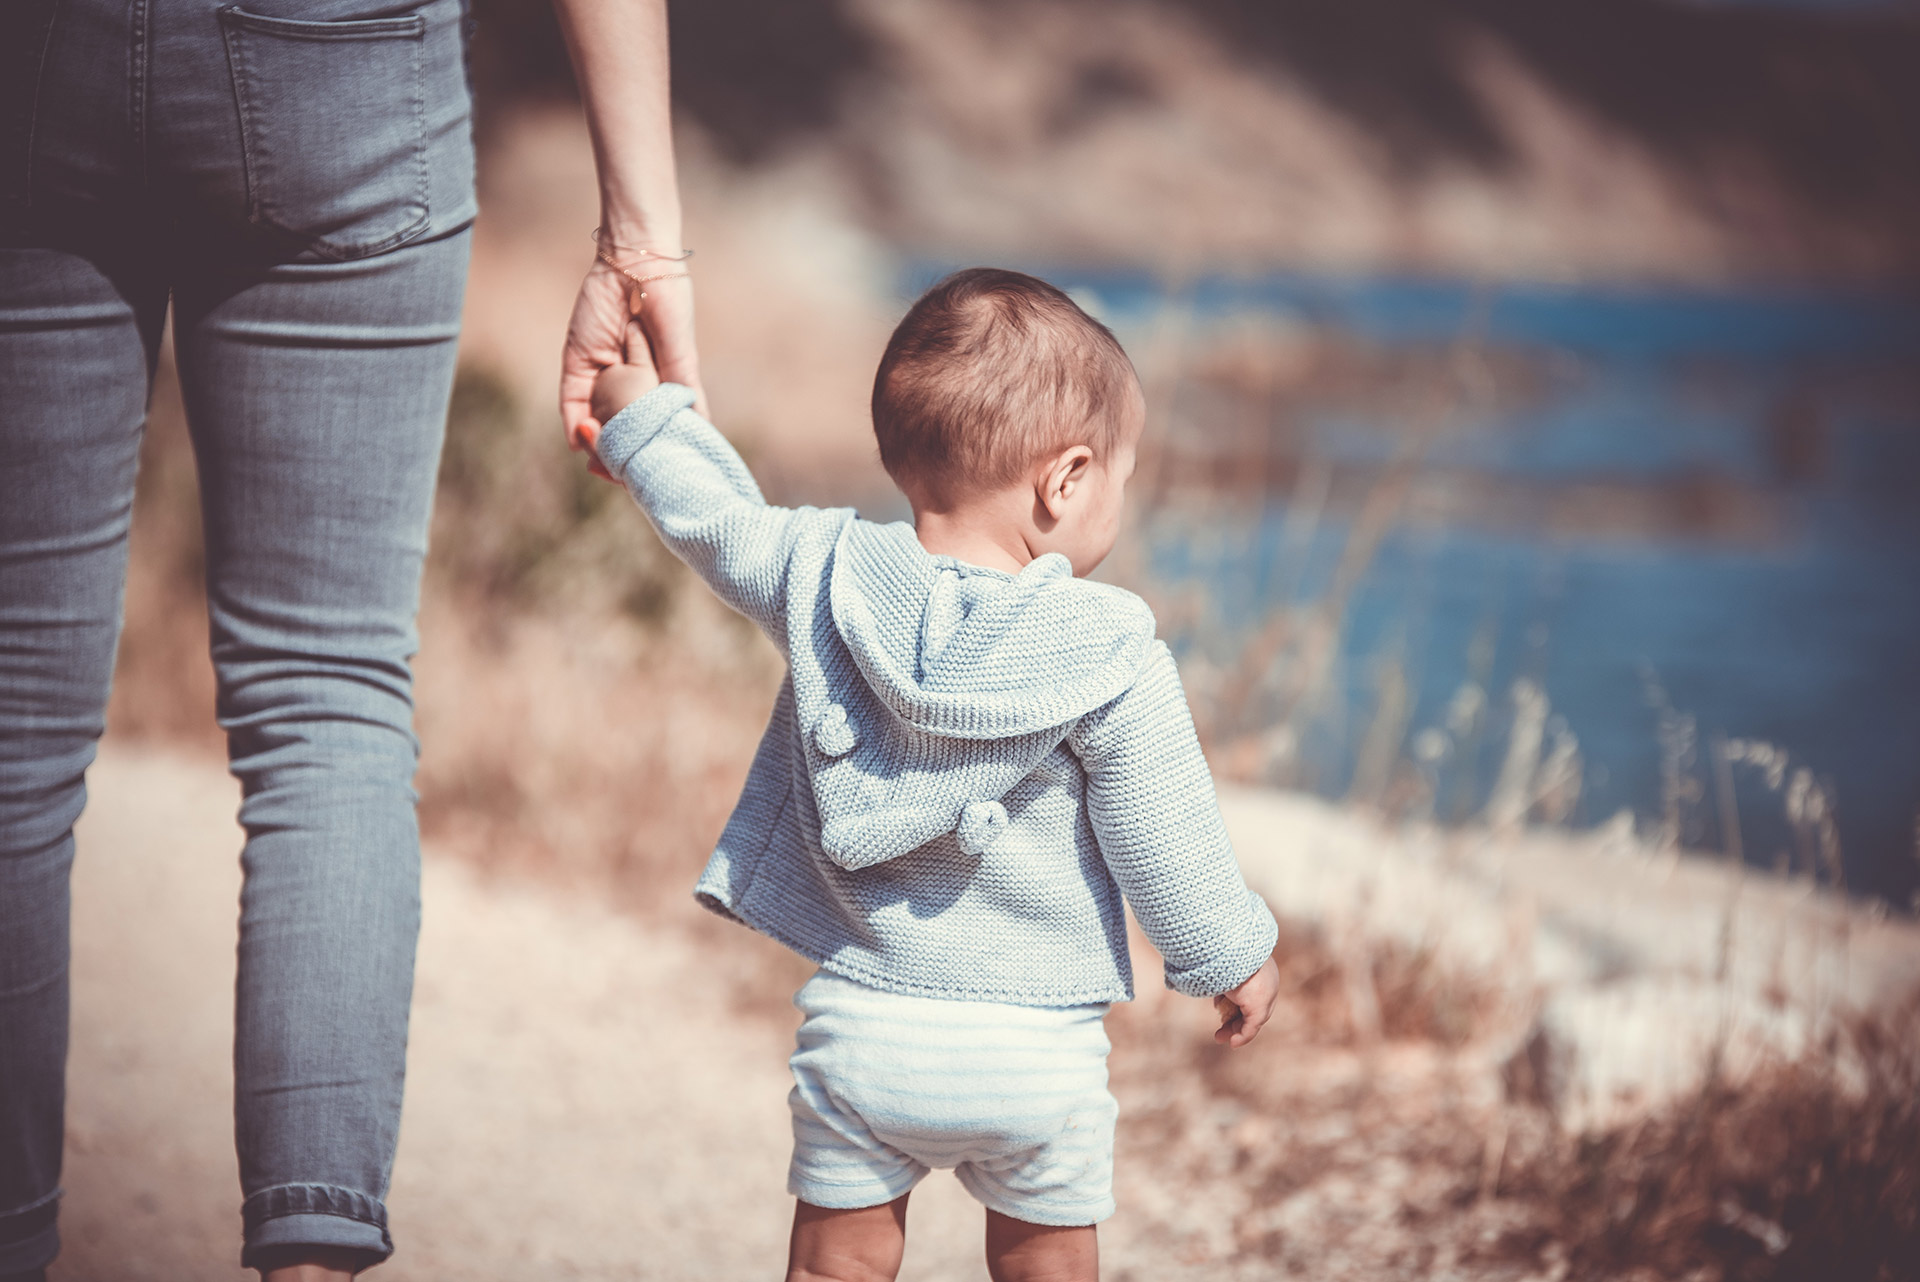 toddler in blue holding hand of adult woman in denim jeans